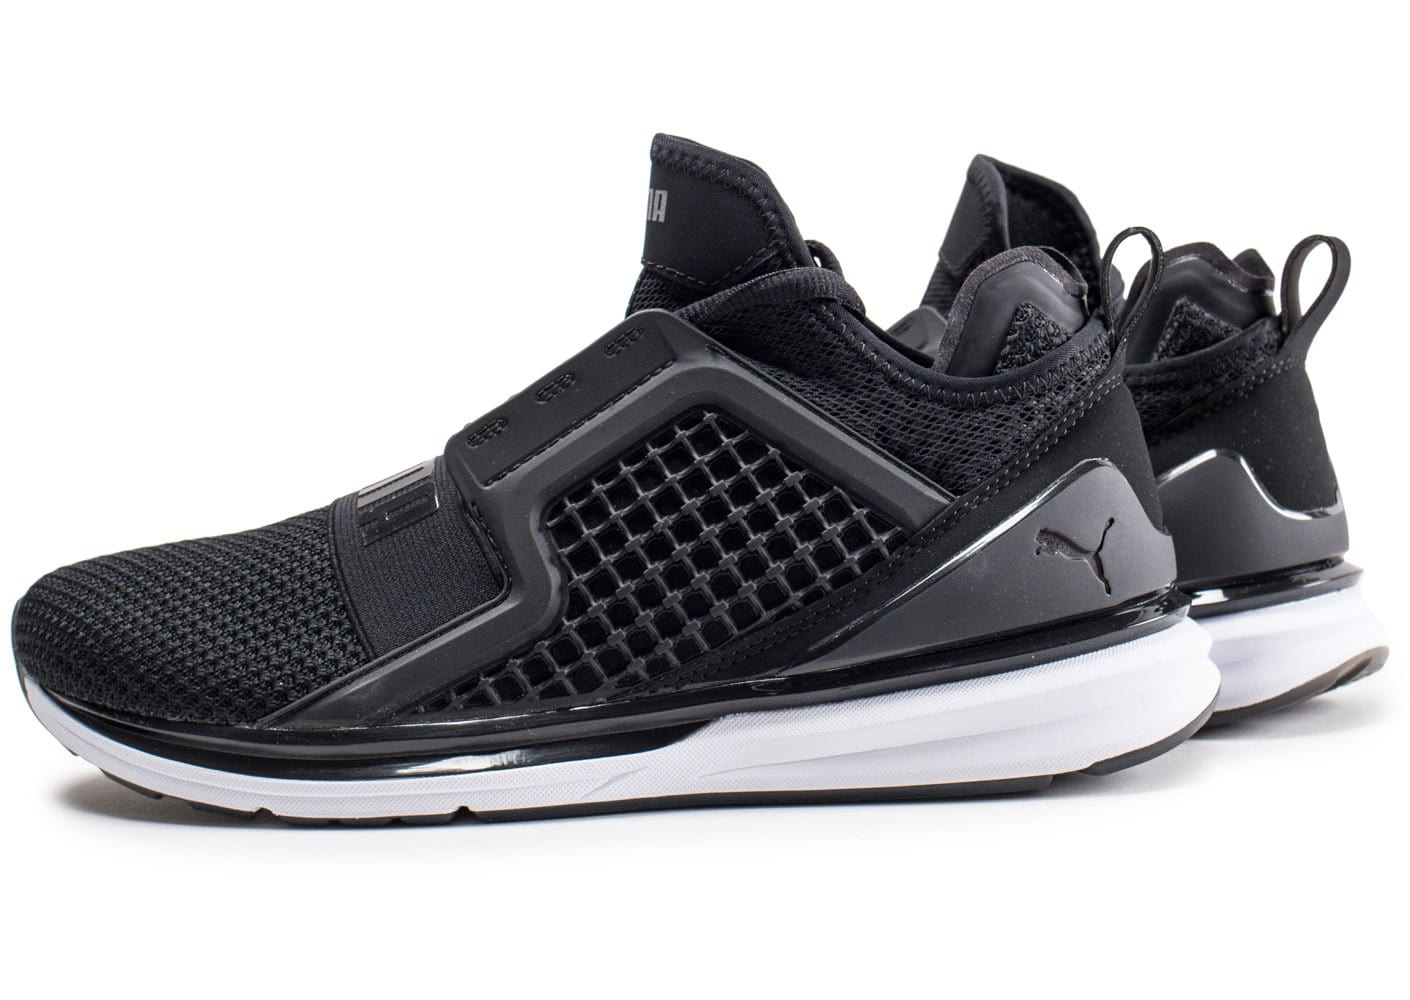 Puma Ignite Limitless noire Chaussures Baskets homme